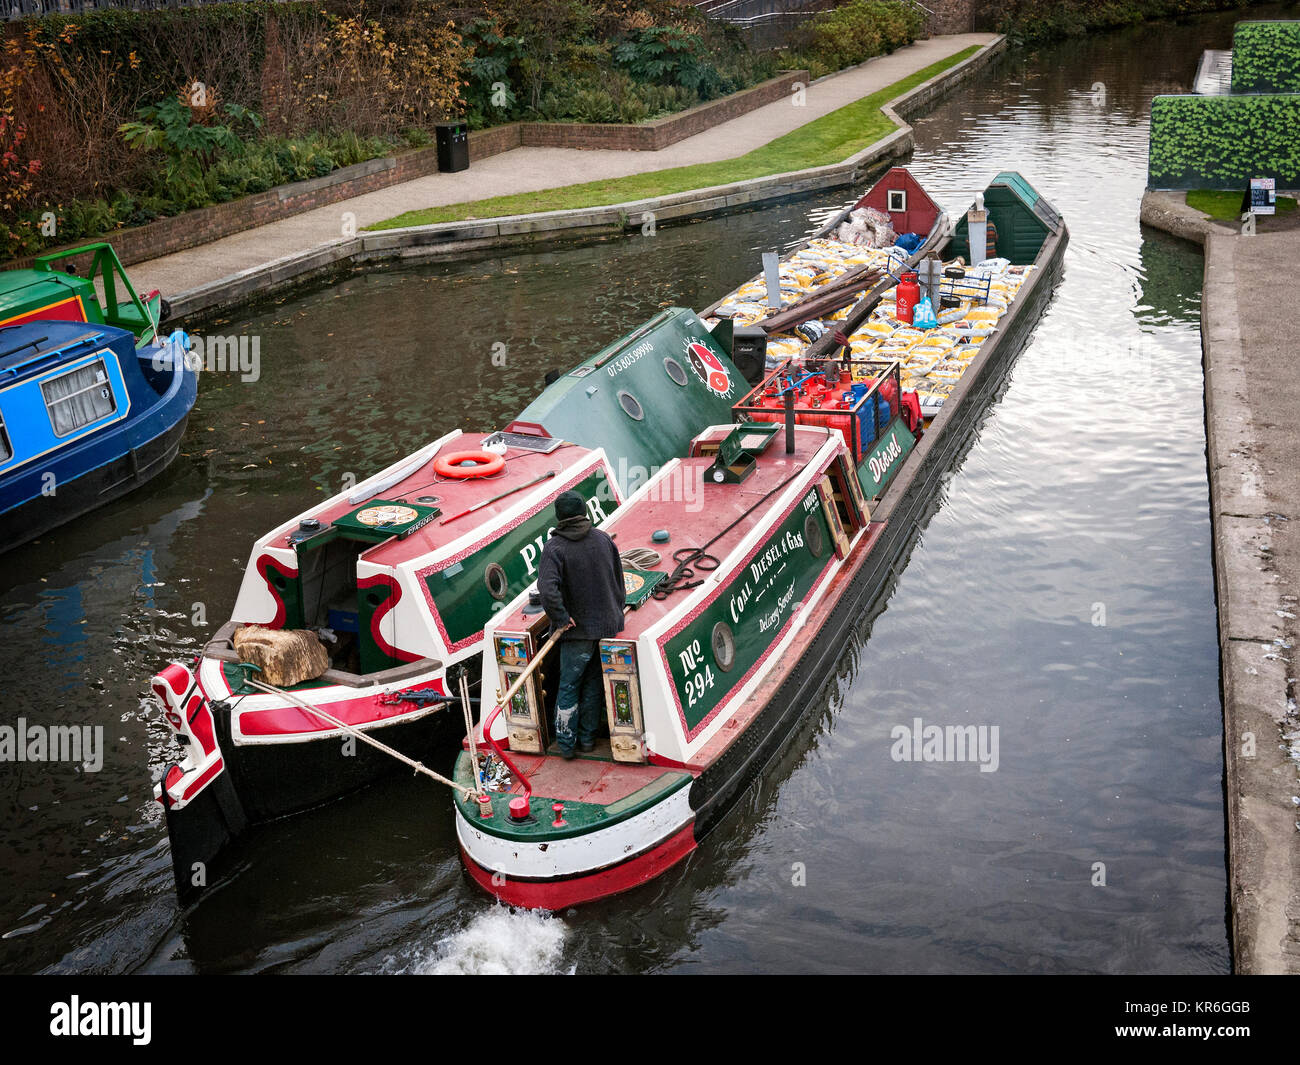 Narrow boats running in tandem on canal in Camden Town North London. - Stock Image